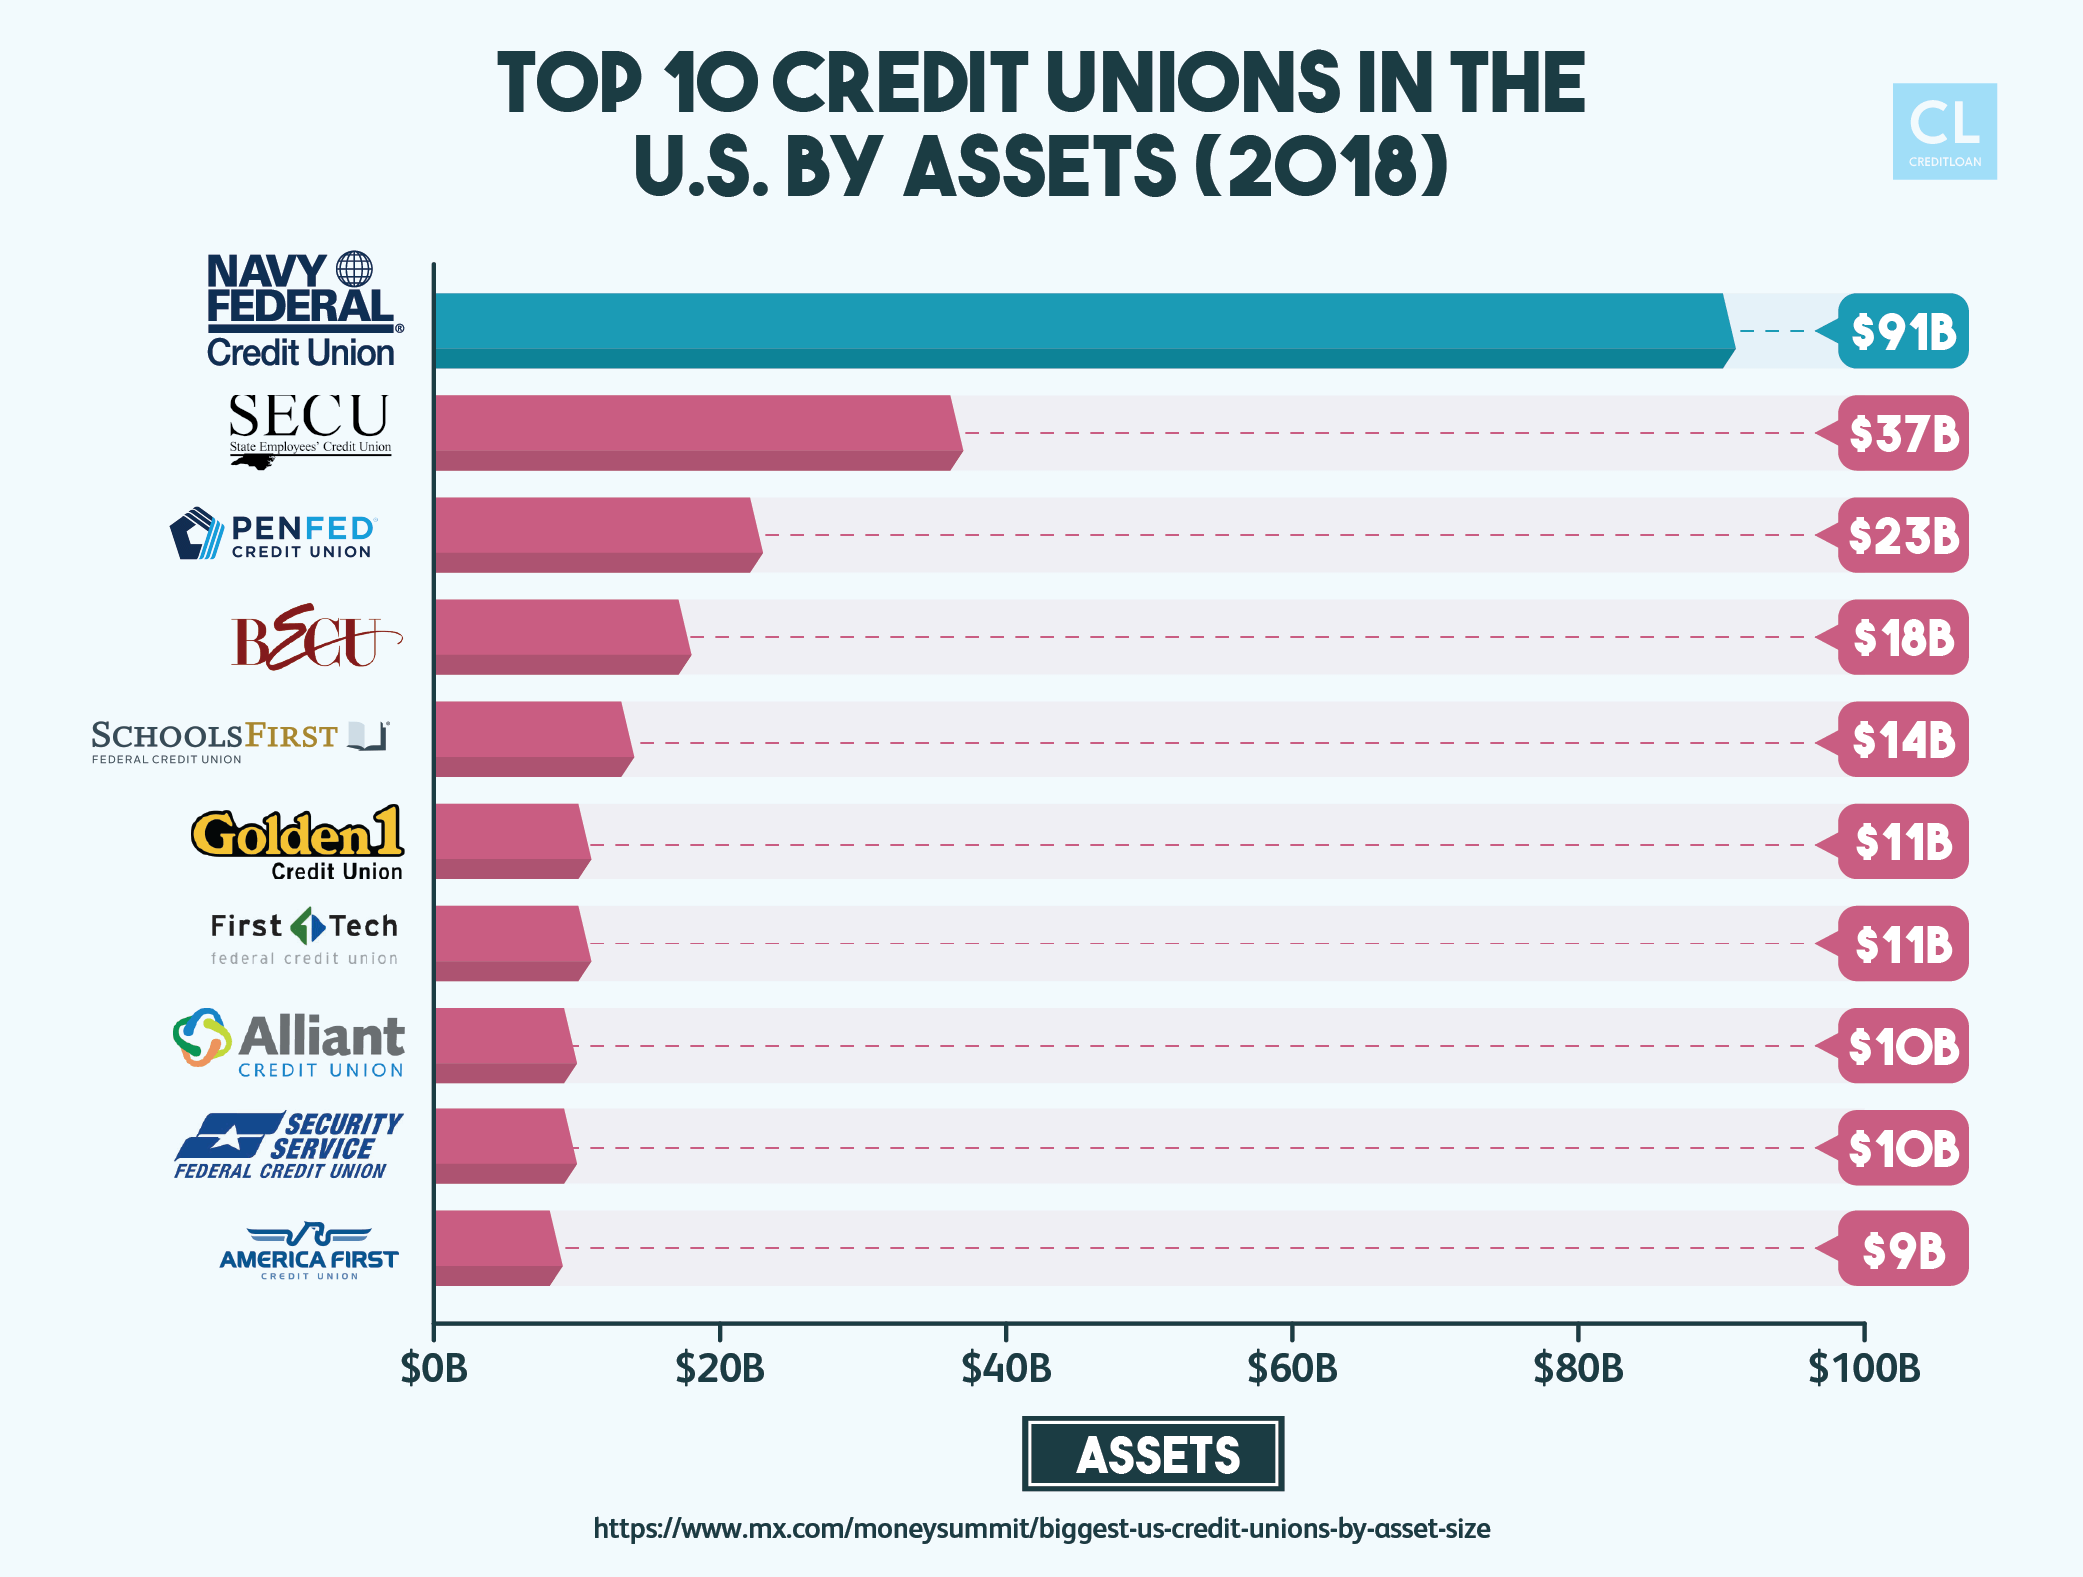 Top 10 Credit Unions in the U.S. by Assets 2018